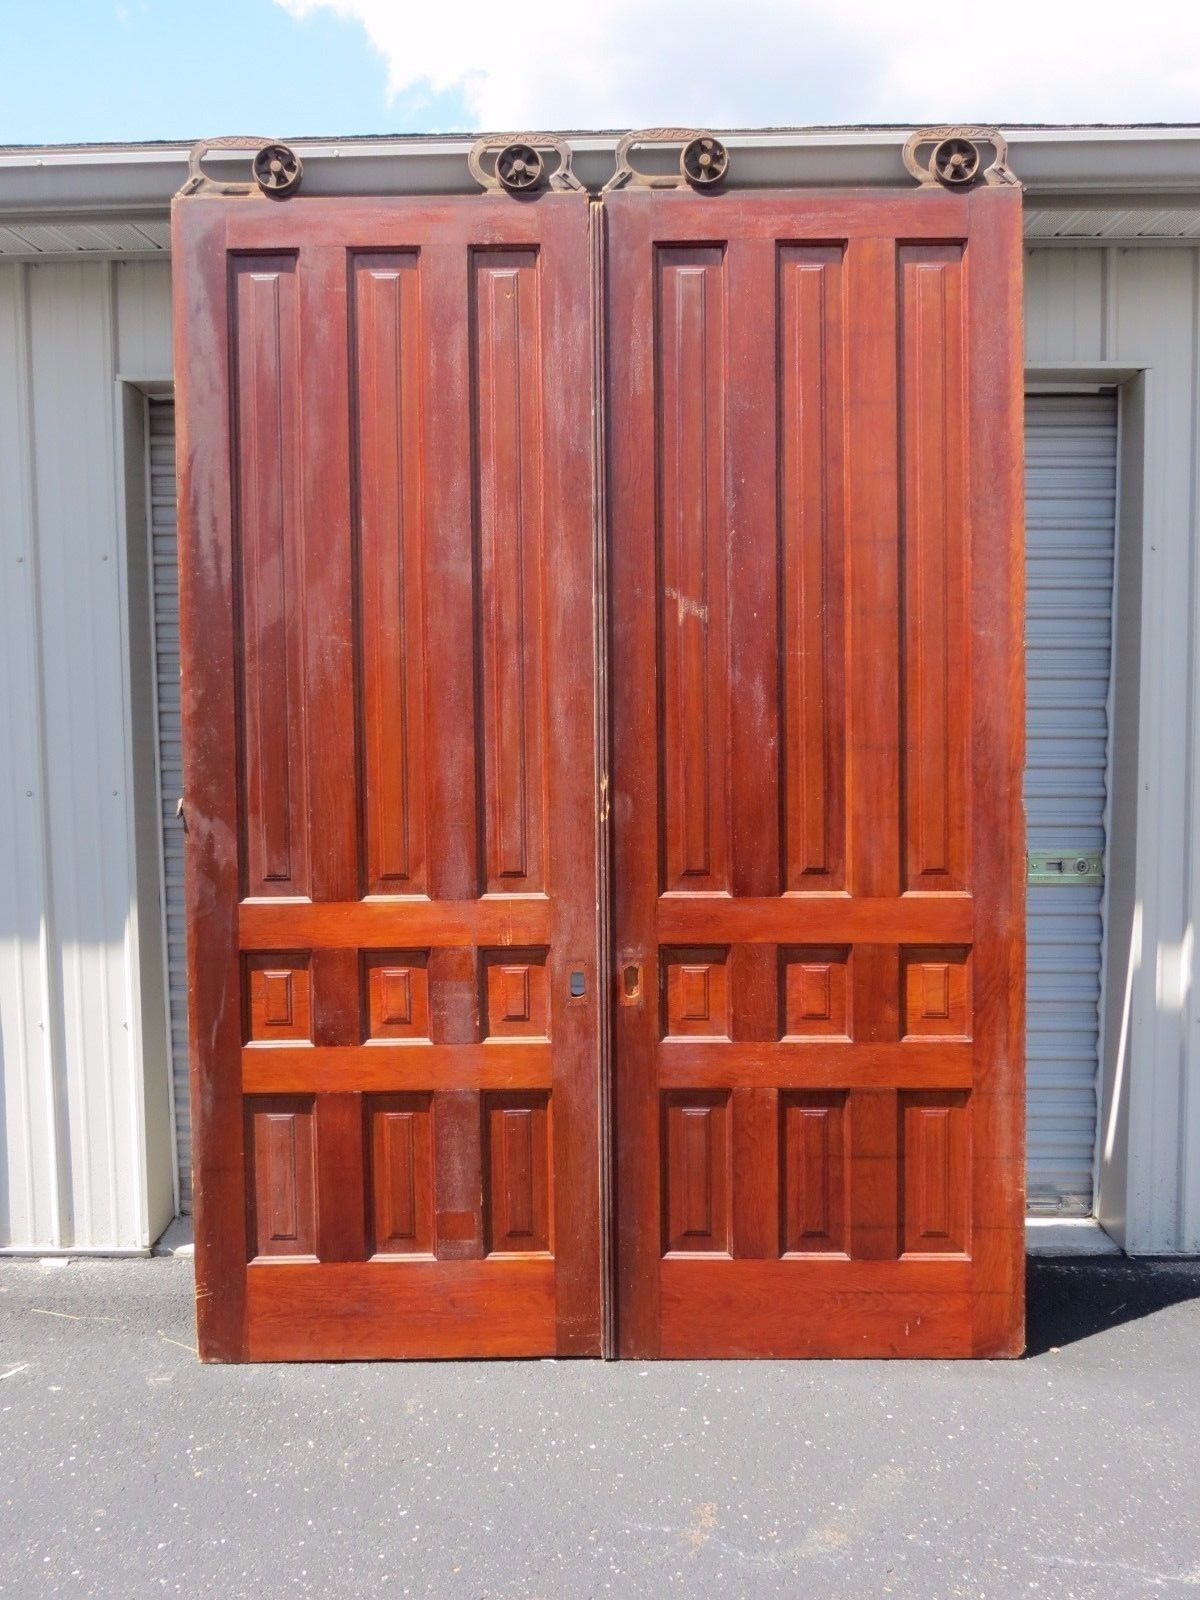 Antique pair 8 ft tall cherry interior sliding pocket doors w antique pair 8 ft tall cherry interior sliding pocket doors w rollers hardware eventelaan Gallery